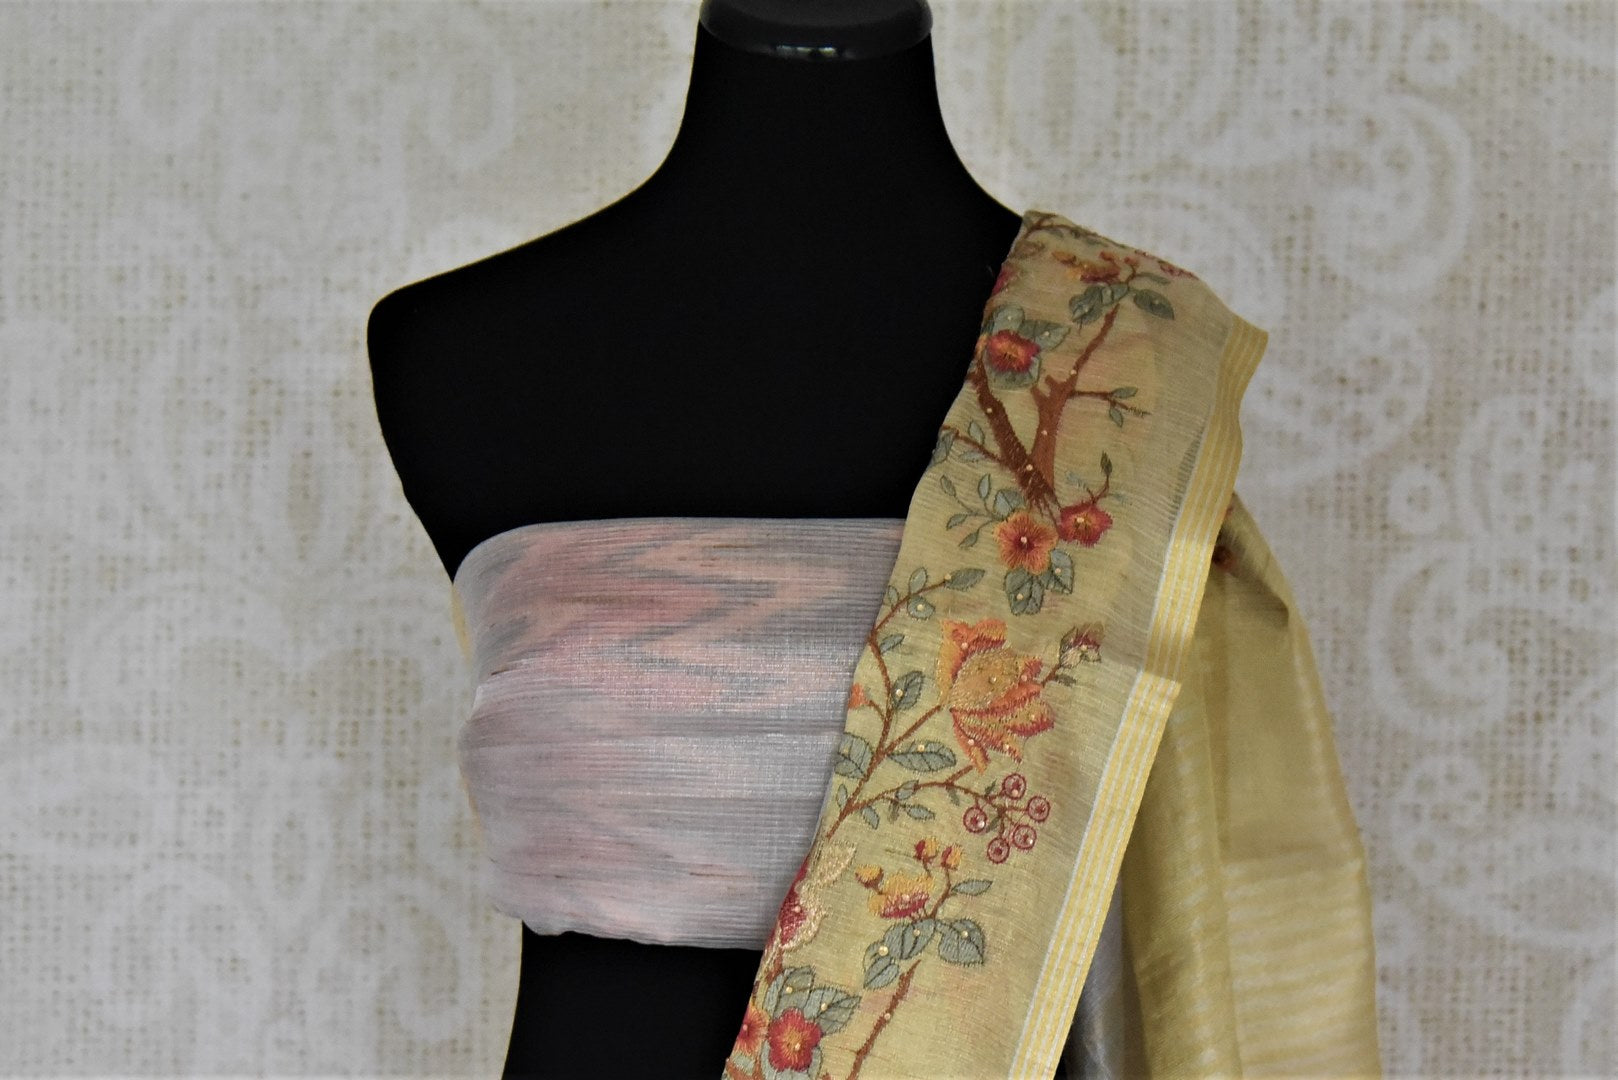 Stunning golden and grey embroidered handloom sari for online shopping in USA. Buy exquisite handloom saris with blouse from Pure Elegance Indian clothing store in USA for parties and festive occasions.-blouse pallu